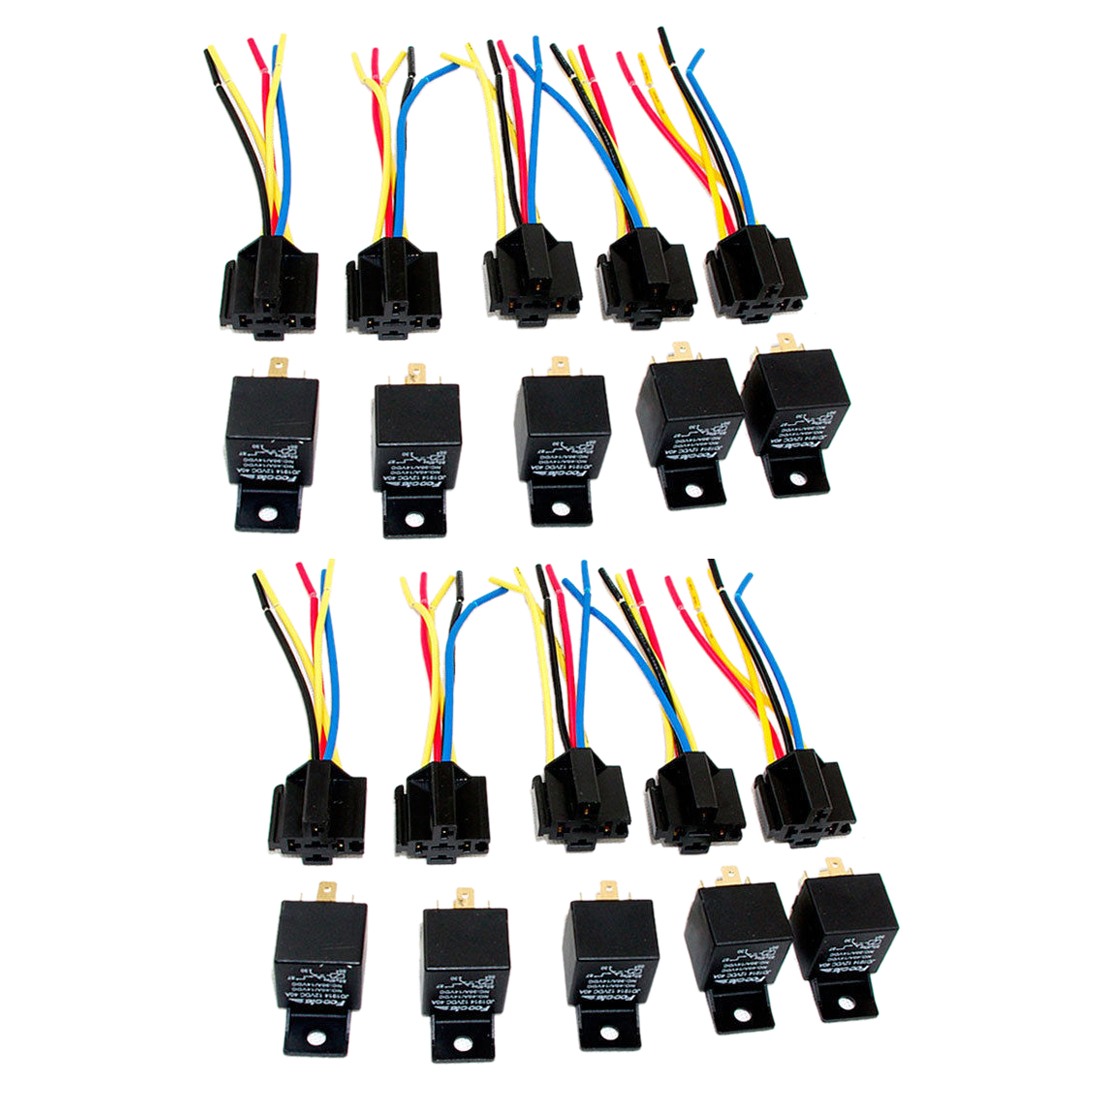 Lot10 New 12 Volt 40 Amp SPDT Automotive Relay With Wires & Harness Socket